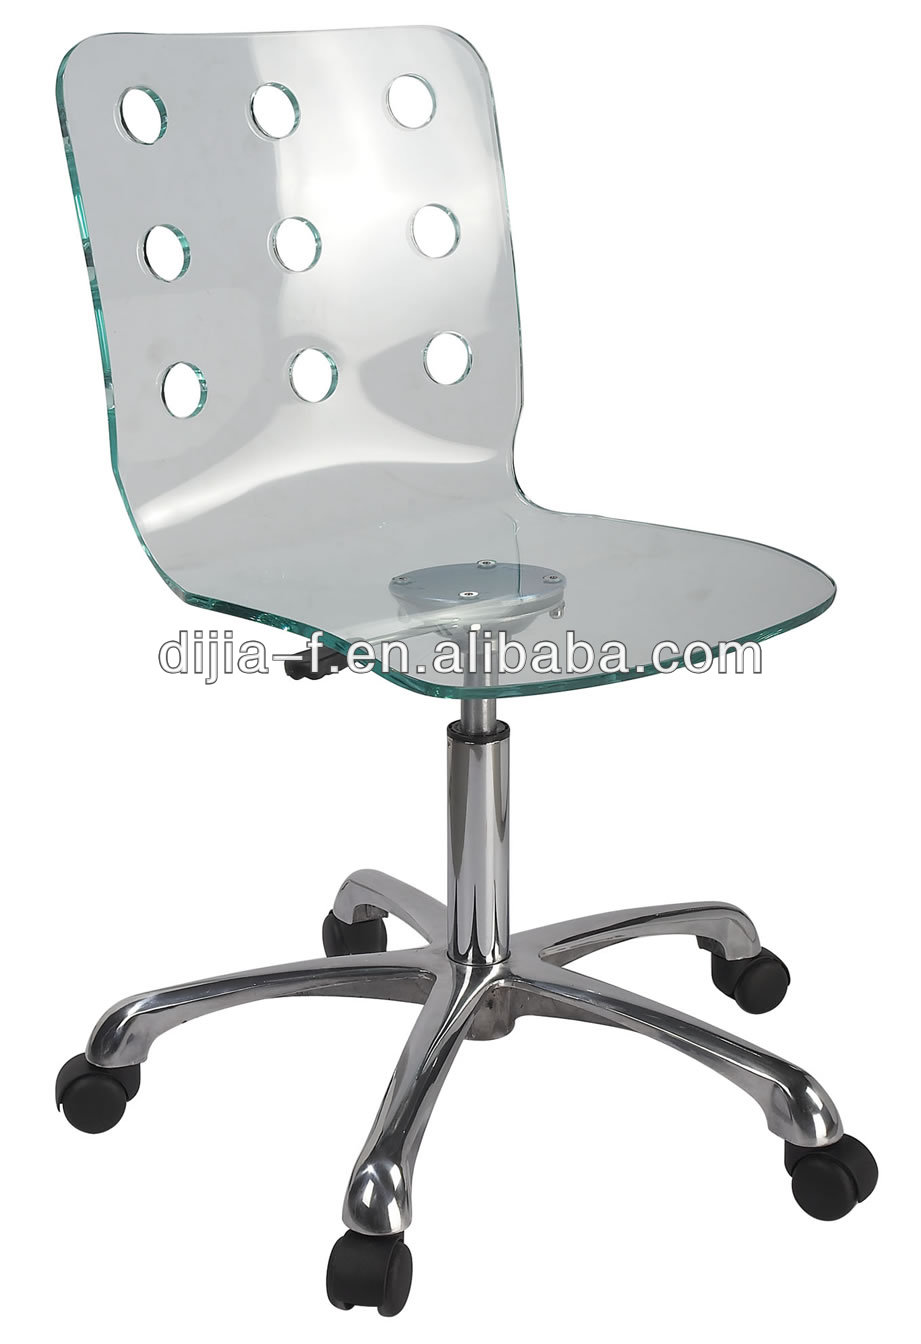 clear acrylic swivel chair clear acrylic swivel chair suppliers and at alibabacom - Clear Desk Chair